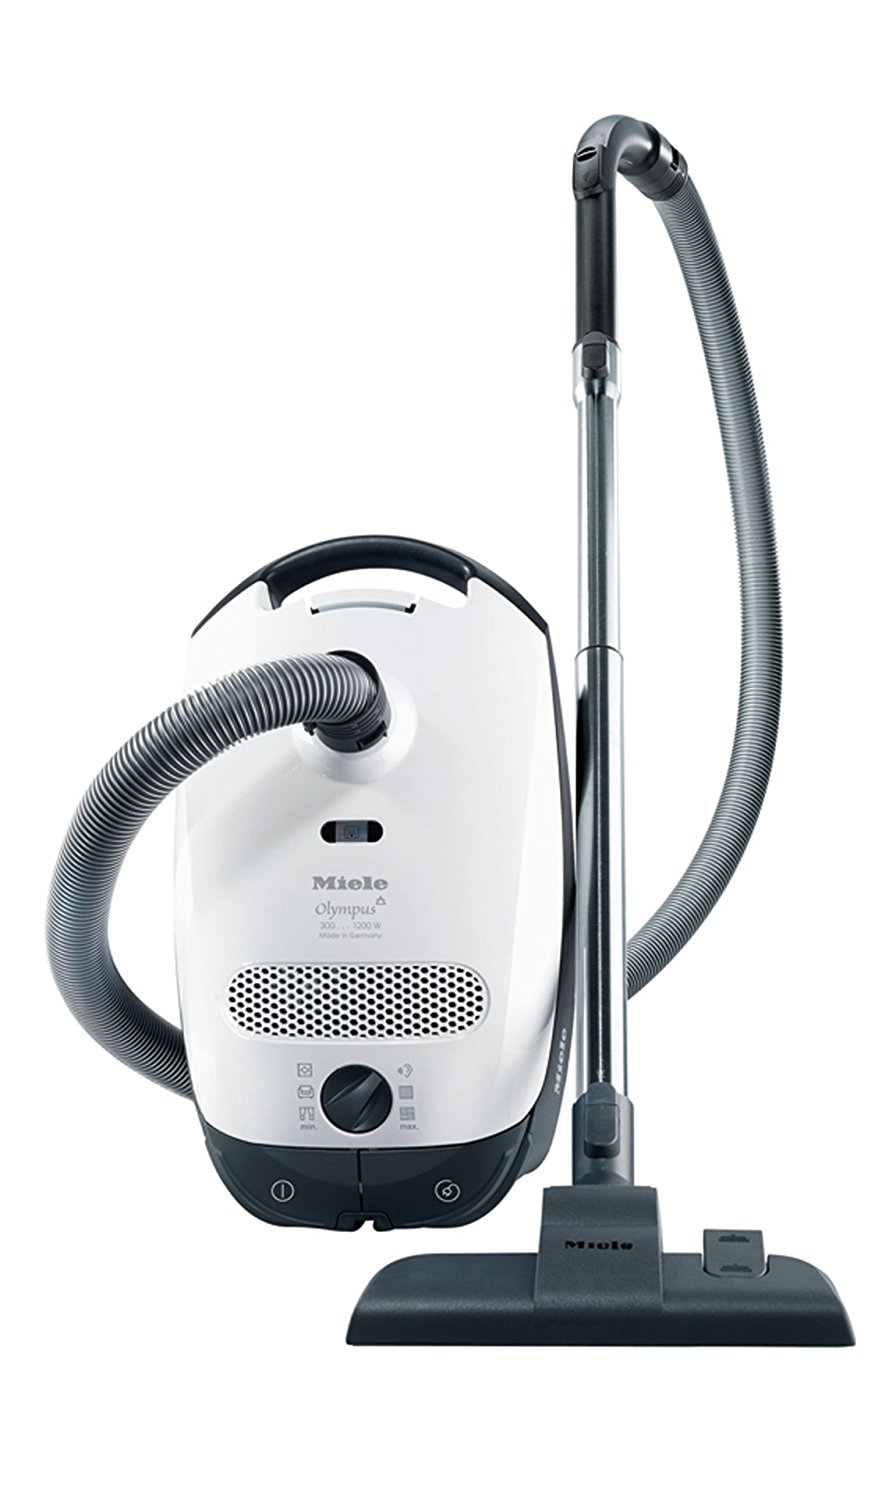 This is an image of a Miele canister vacuum cleaner which is great for vacuuming hardwood floors.